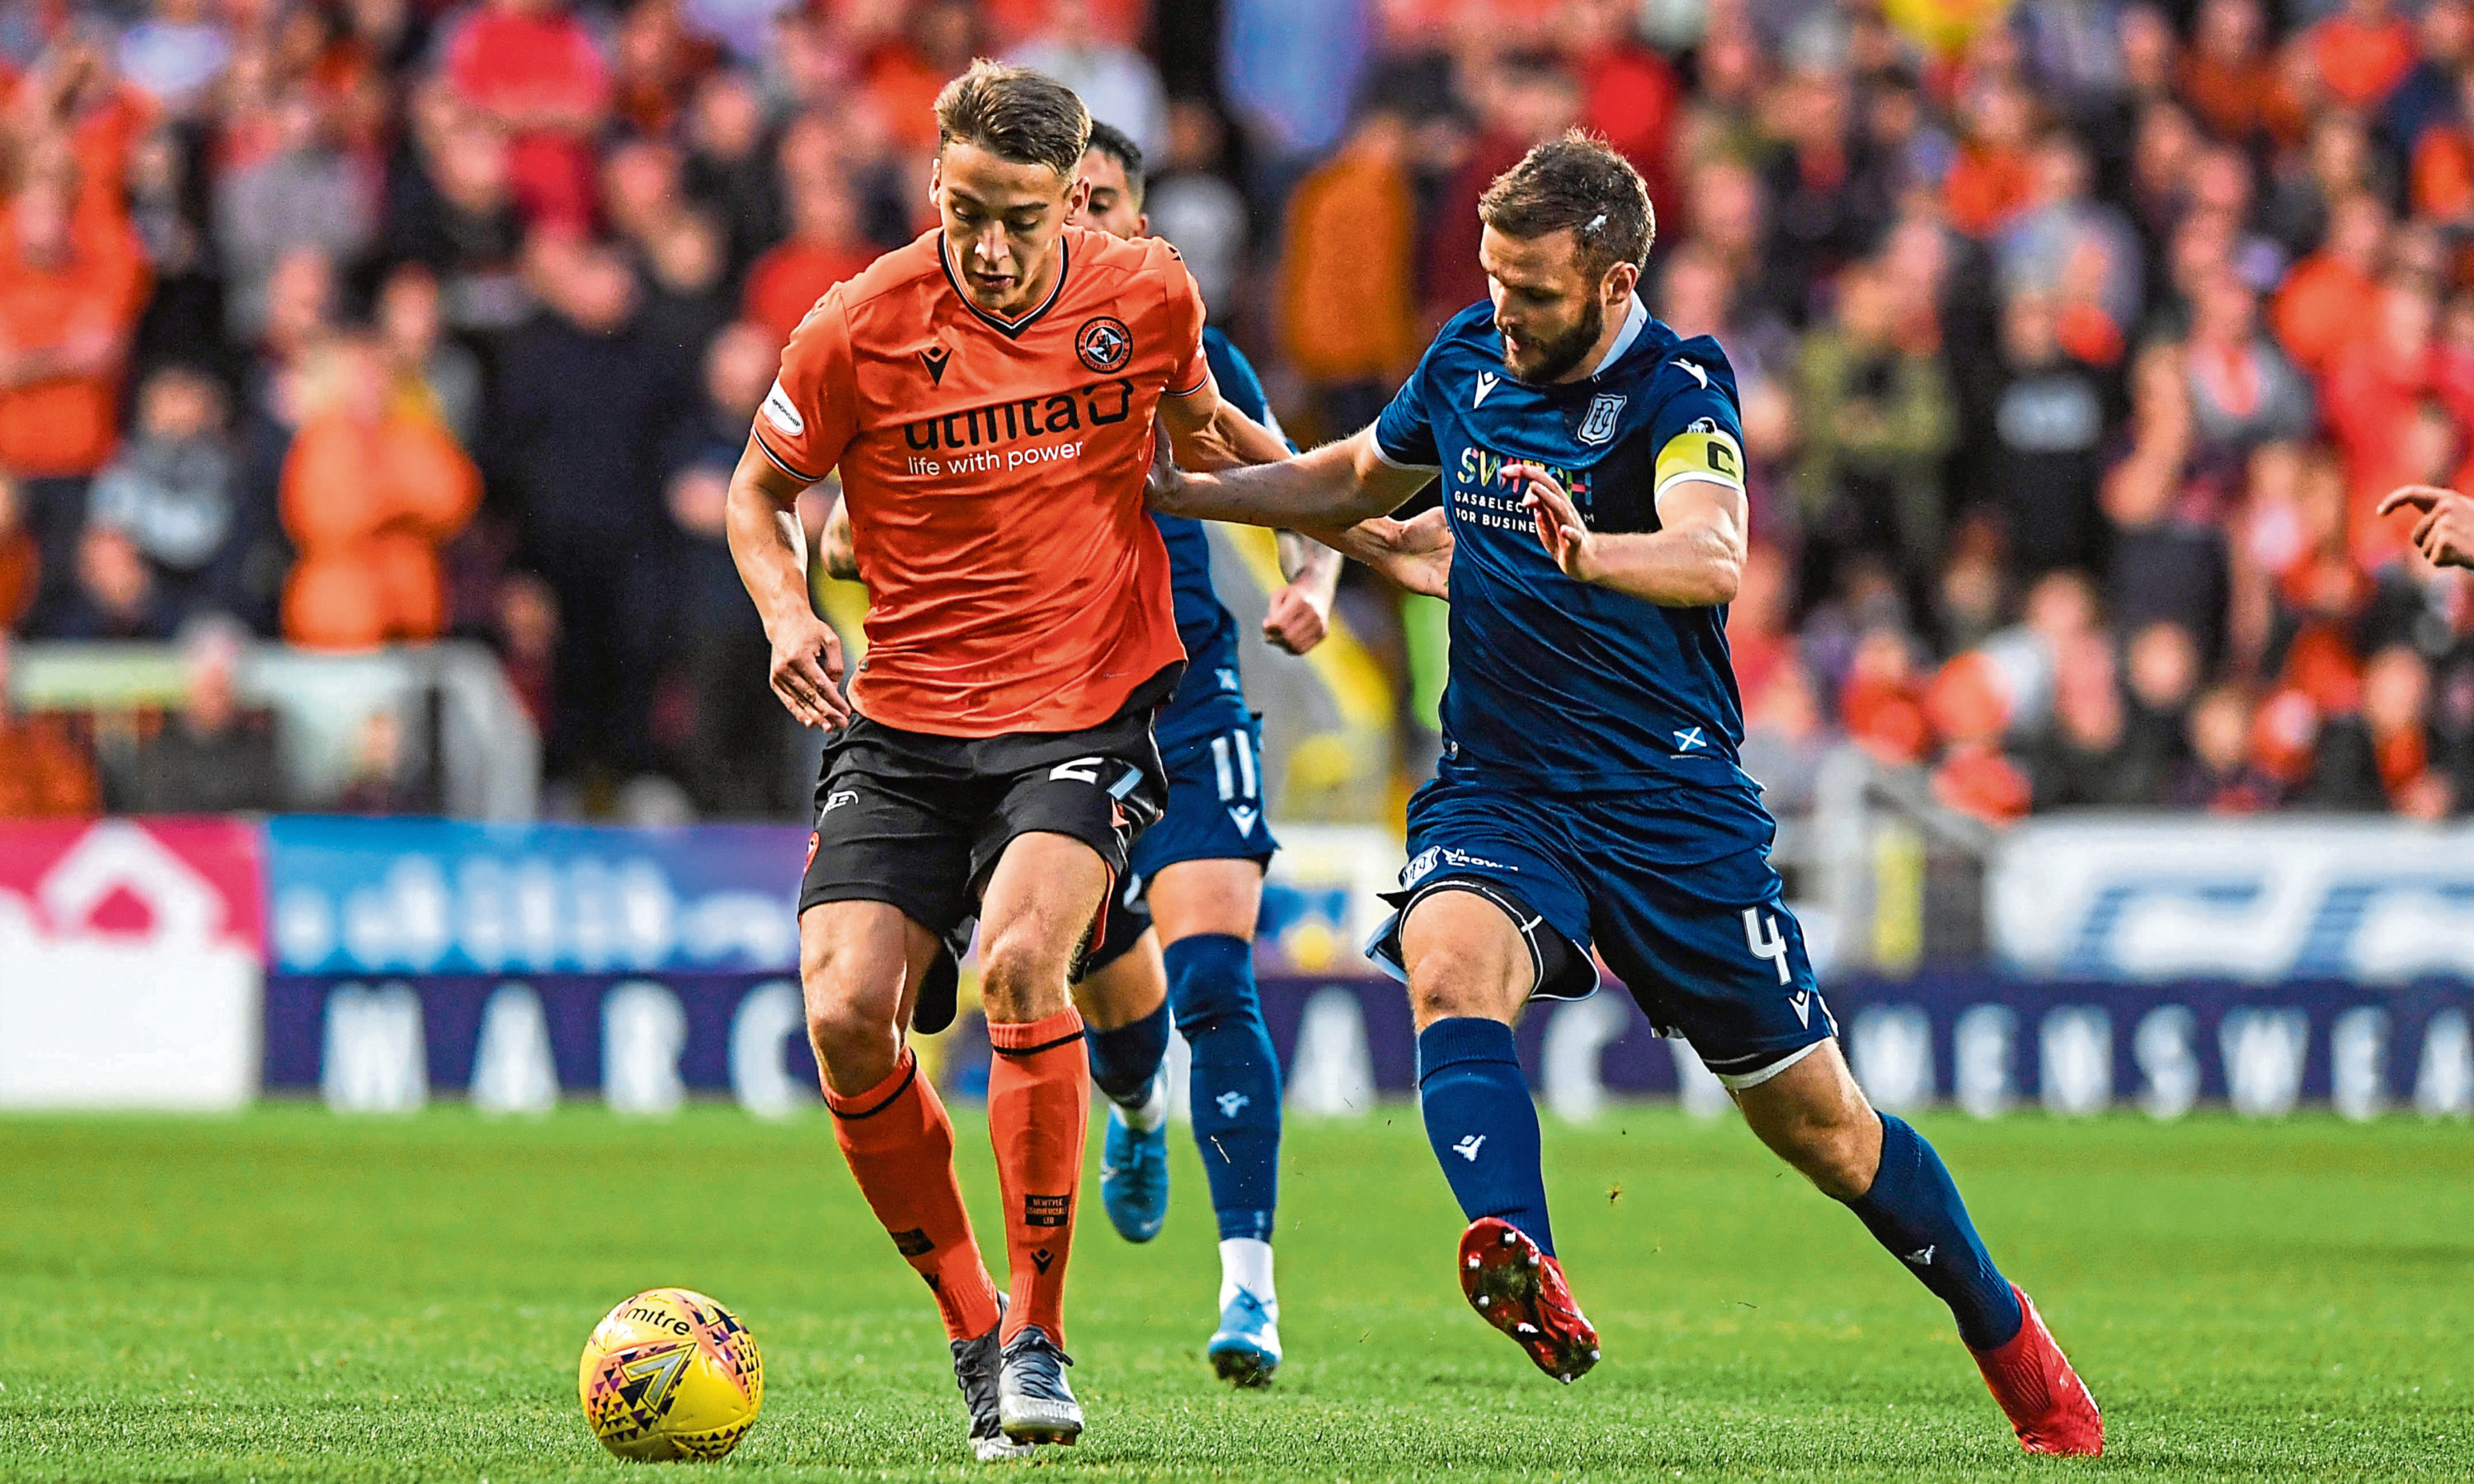 Dundee United's Louis Appere battles with Dundee's Jamie Ness.